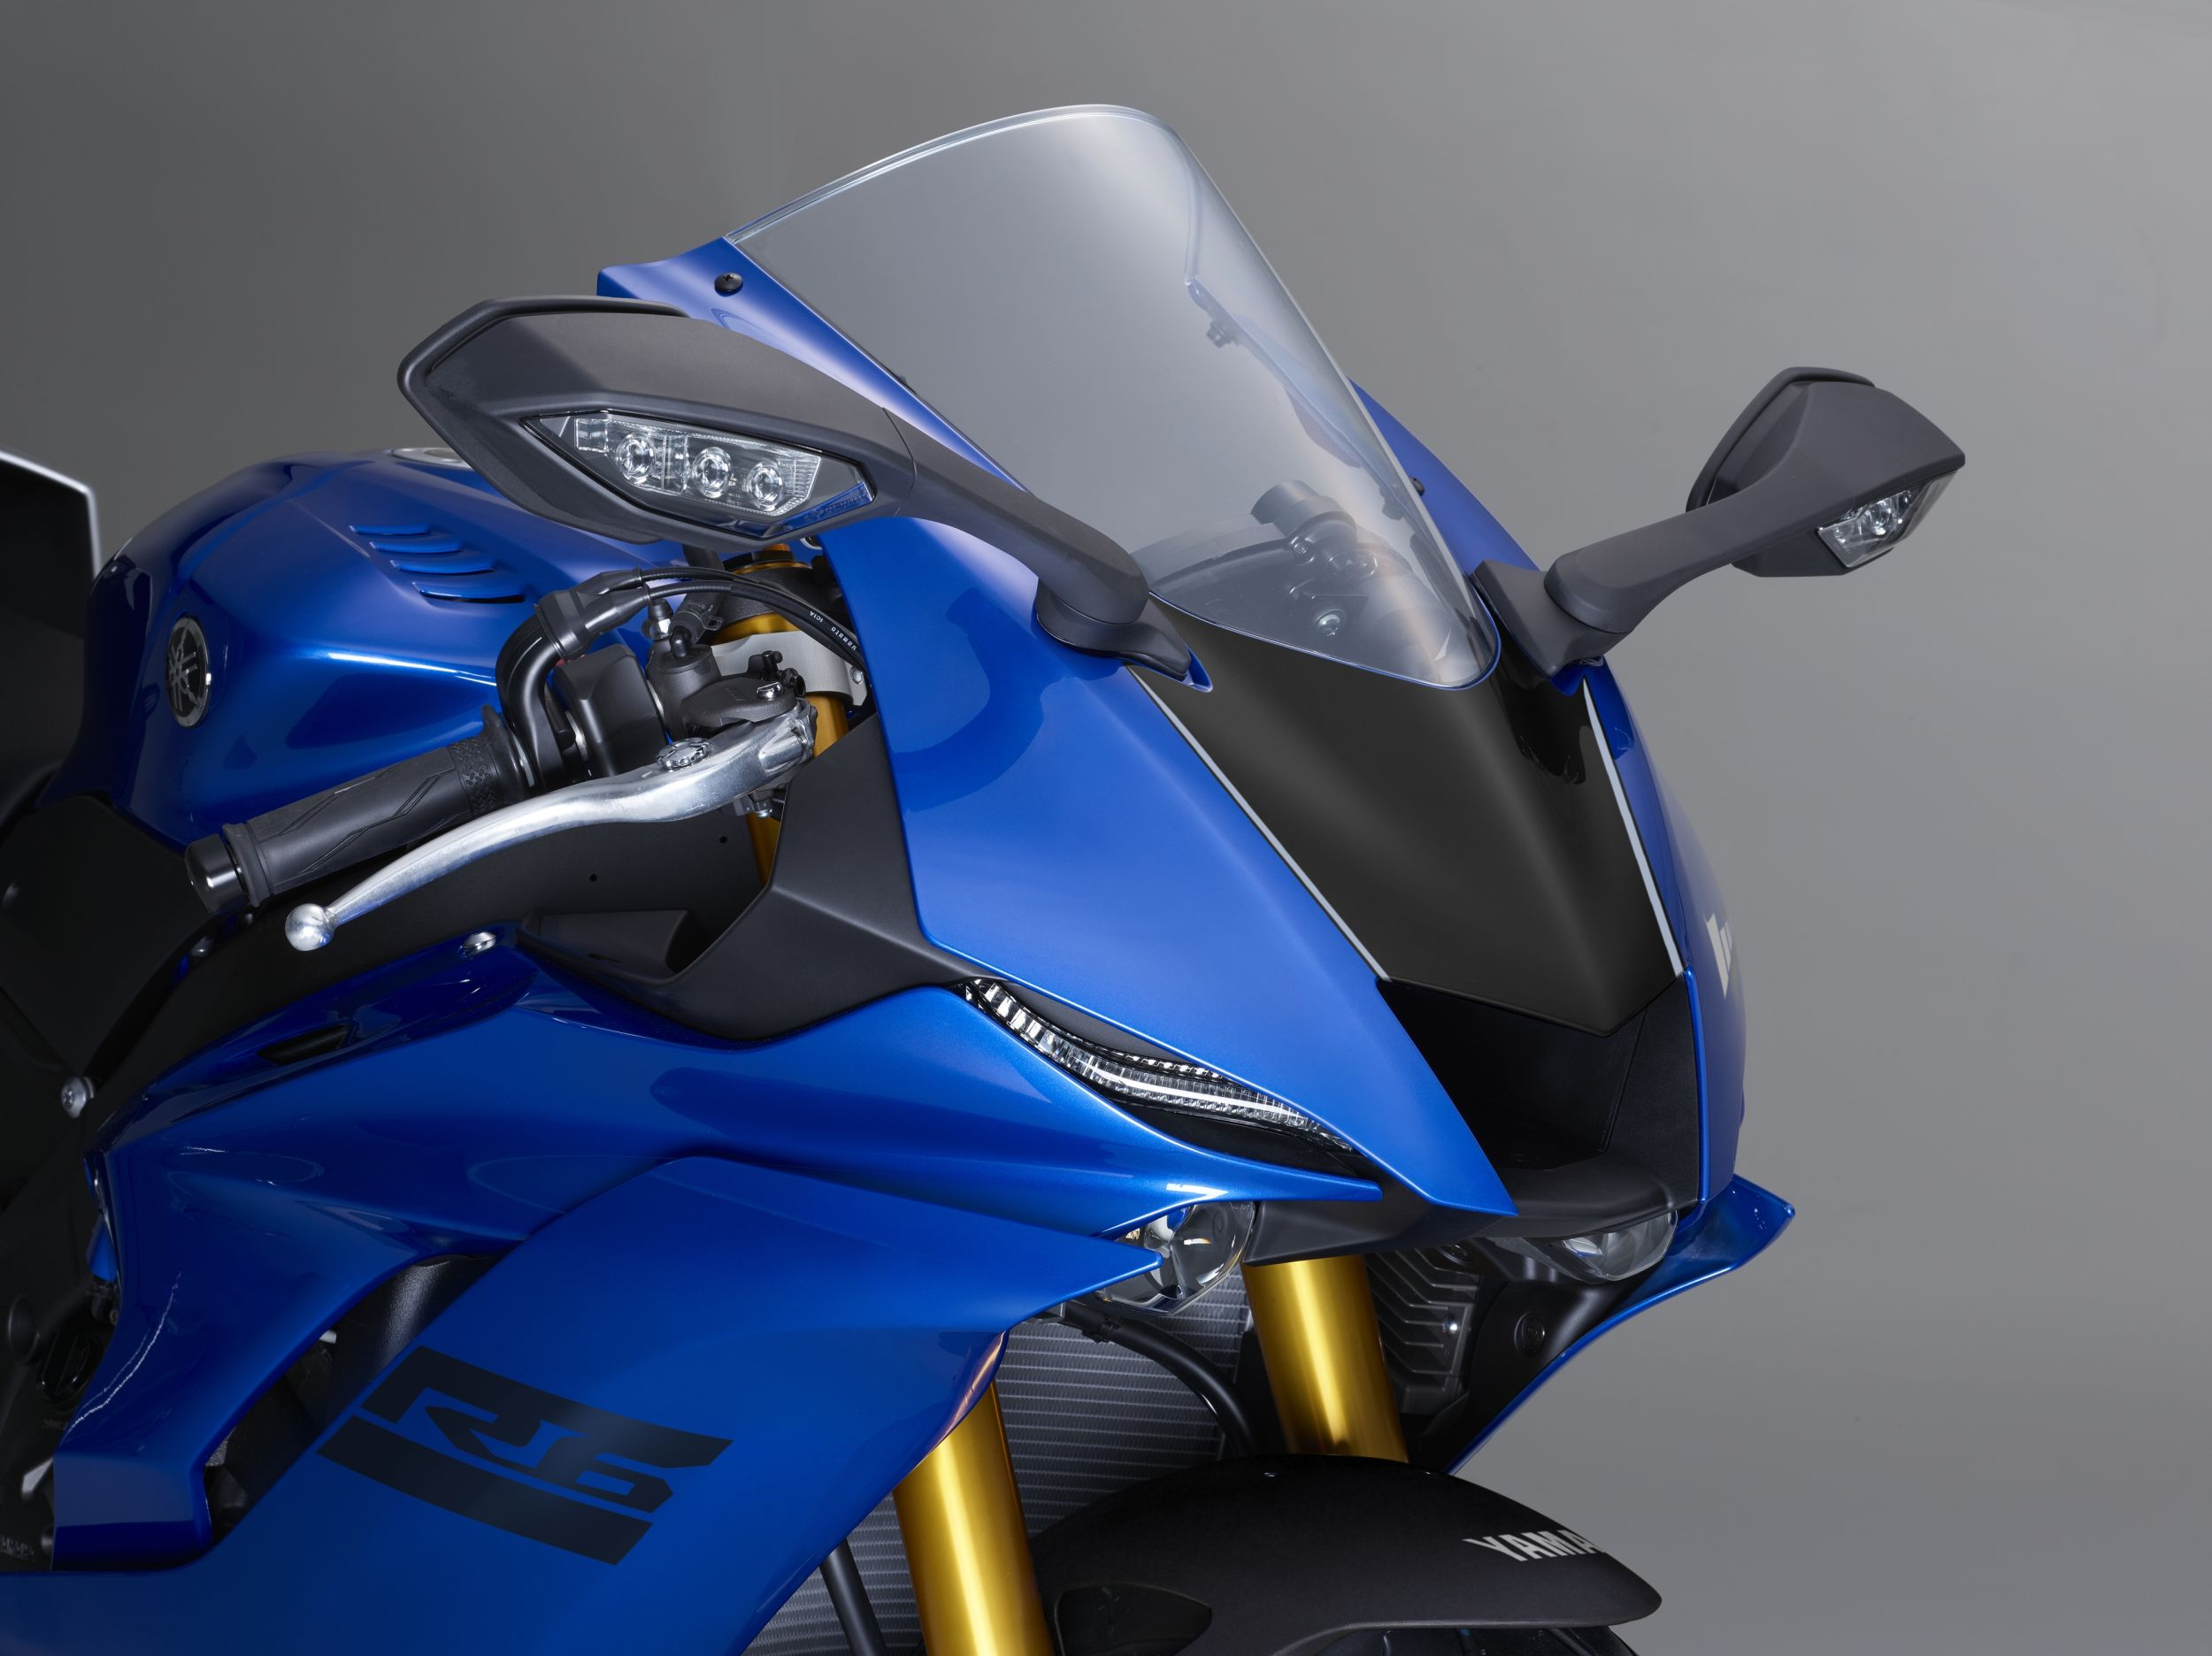 Yamaha YZF-R6 - All technical Data of the Model YZF-R6 from Yamaha